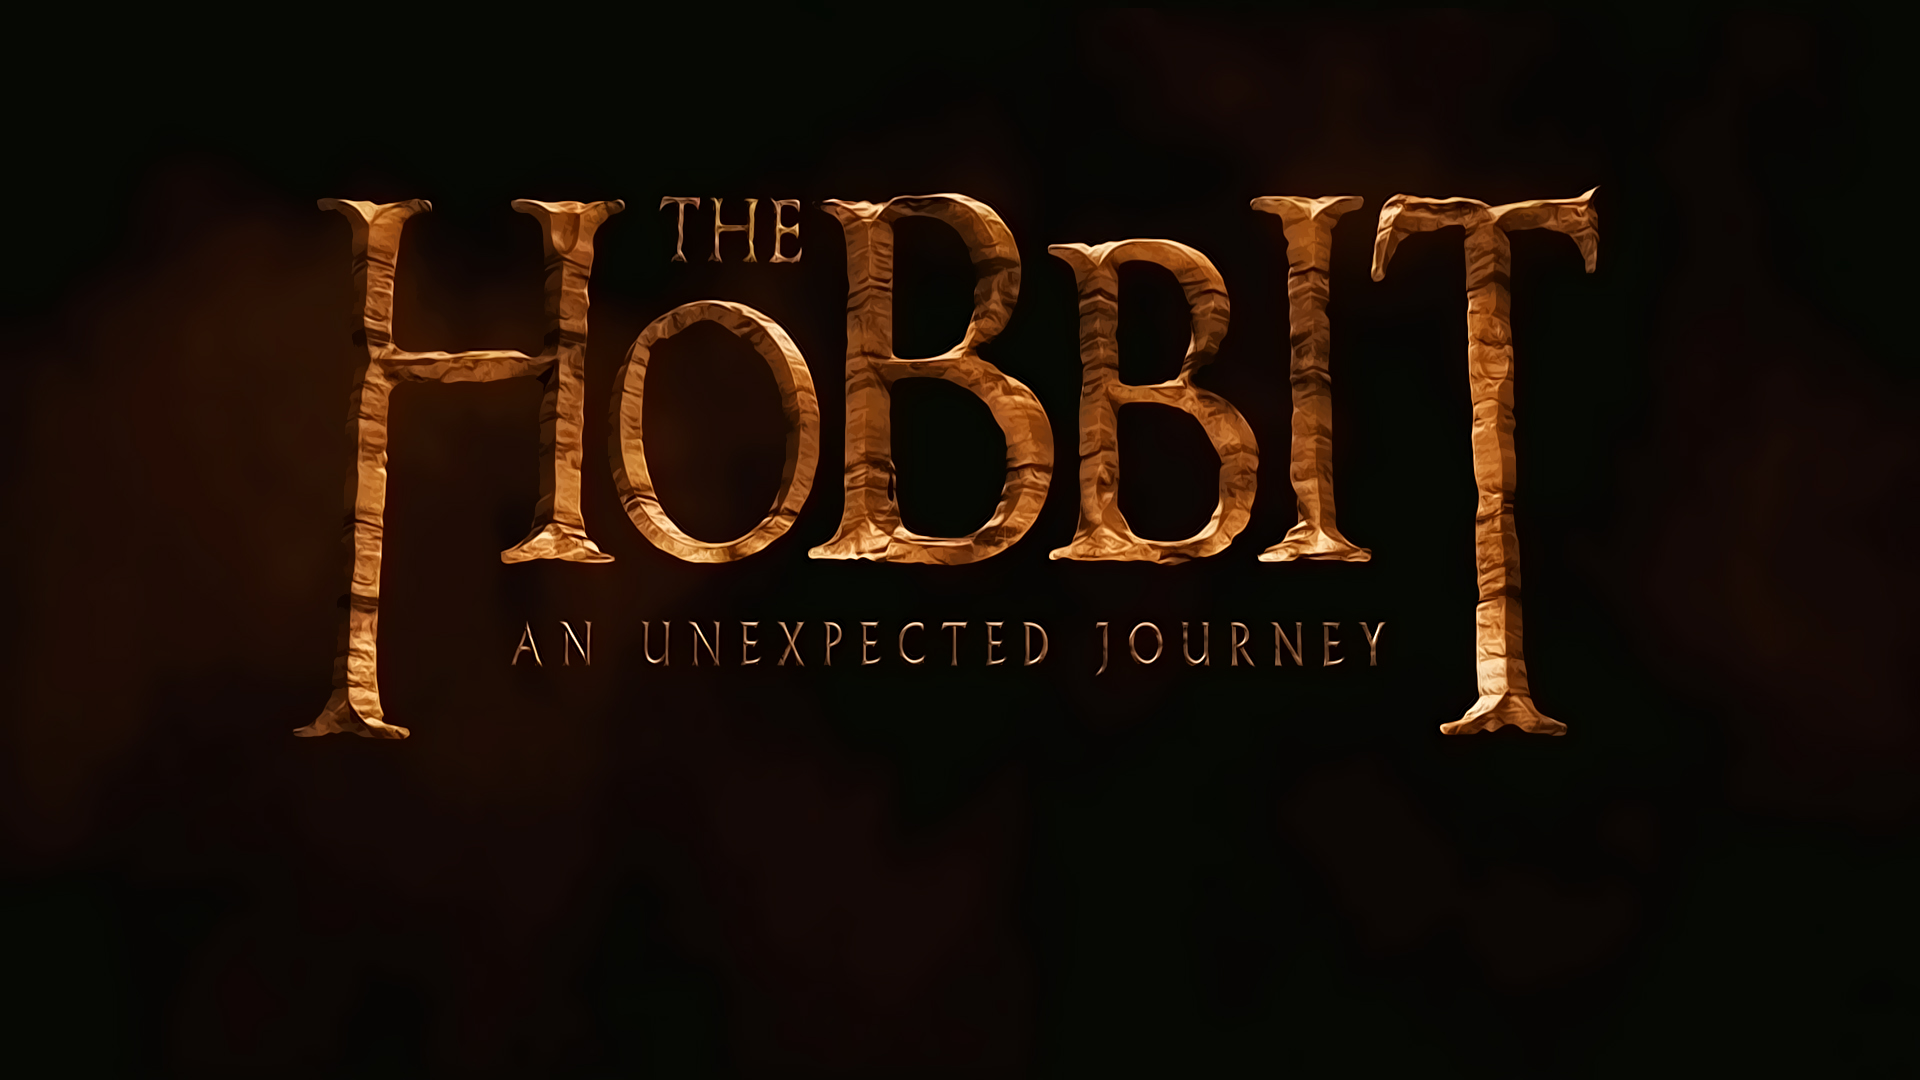 1920x1080 The Hobbit Poster Desktop Pc And Mac Wallpaper Pictures 1920x1080